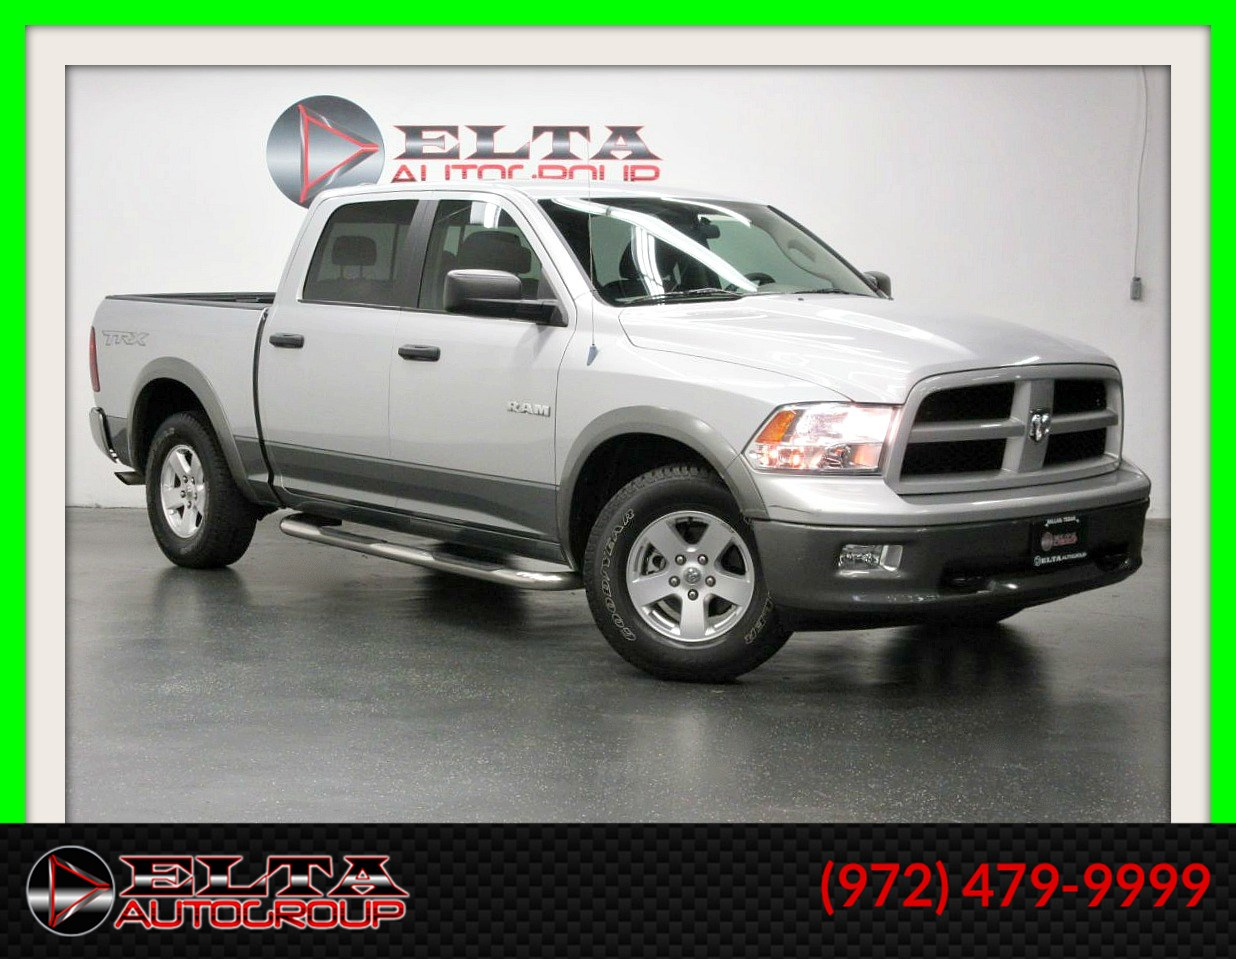 2010 Dodge Ram 1500 TRX * CREW CAB * V8 * LOW LOW MILES * 1 OWNER